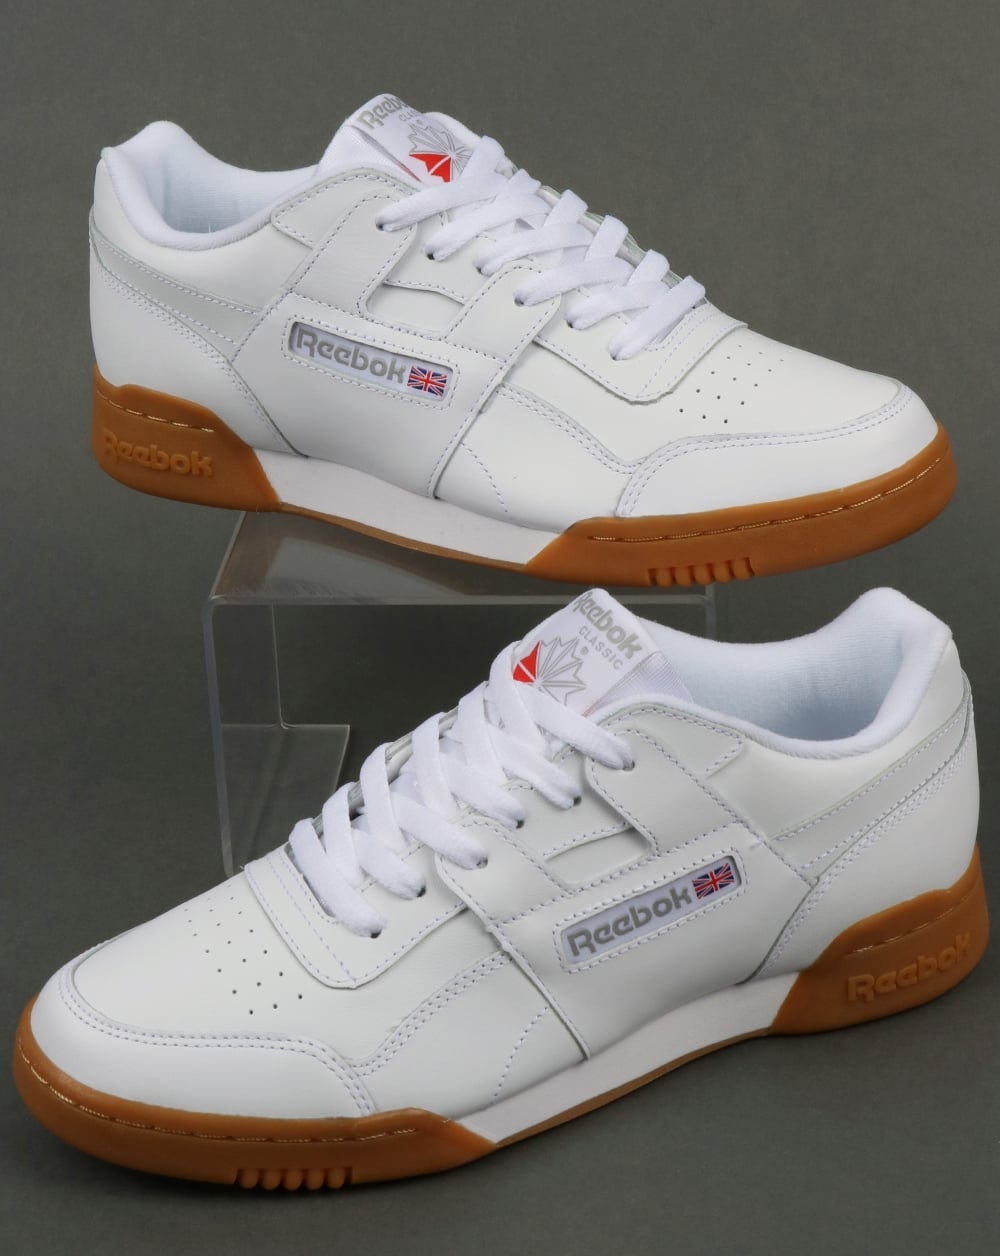 Reebok Reebok Workout Plus Trainers White Carbon Gum f049513ce